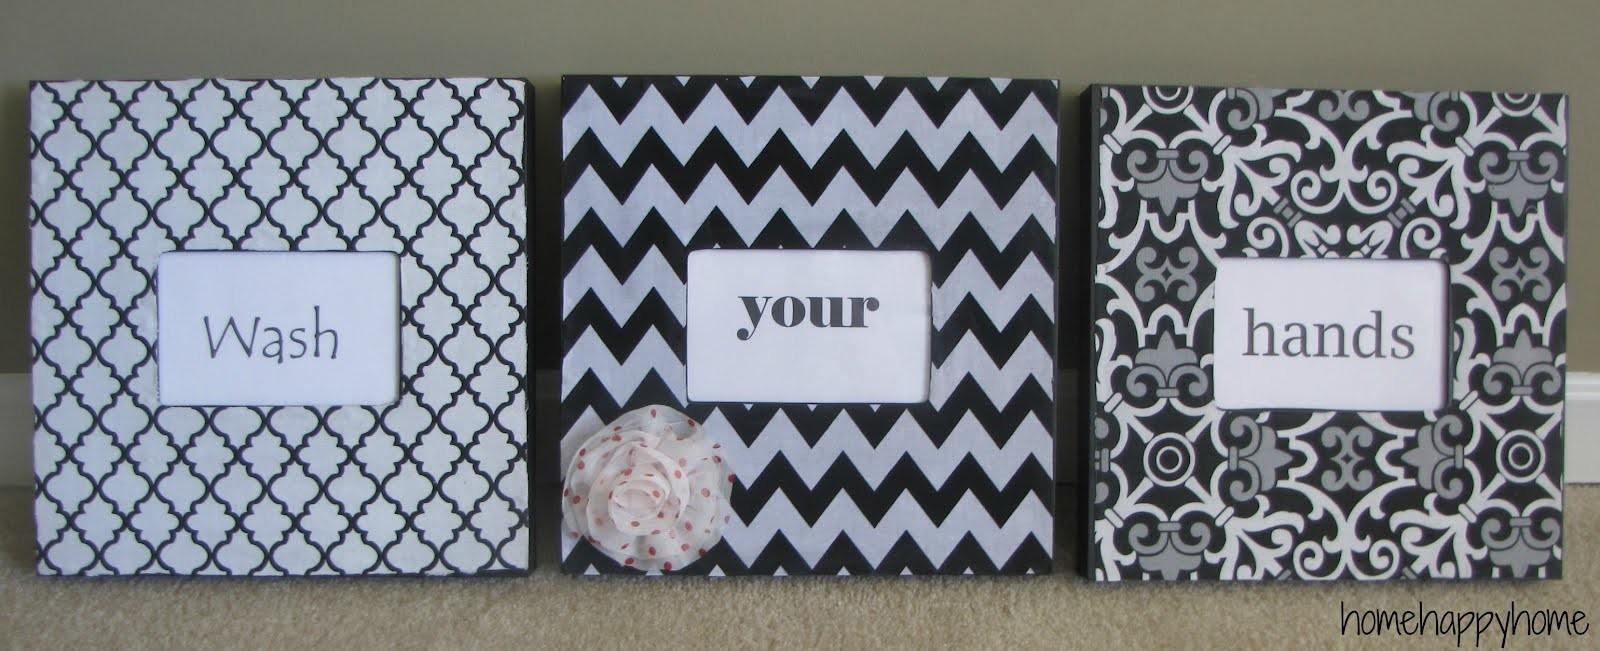 Frames Fabric Diy Home Decorating Excellence